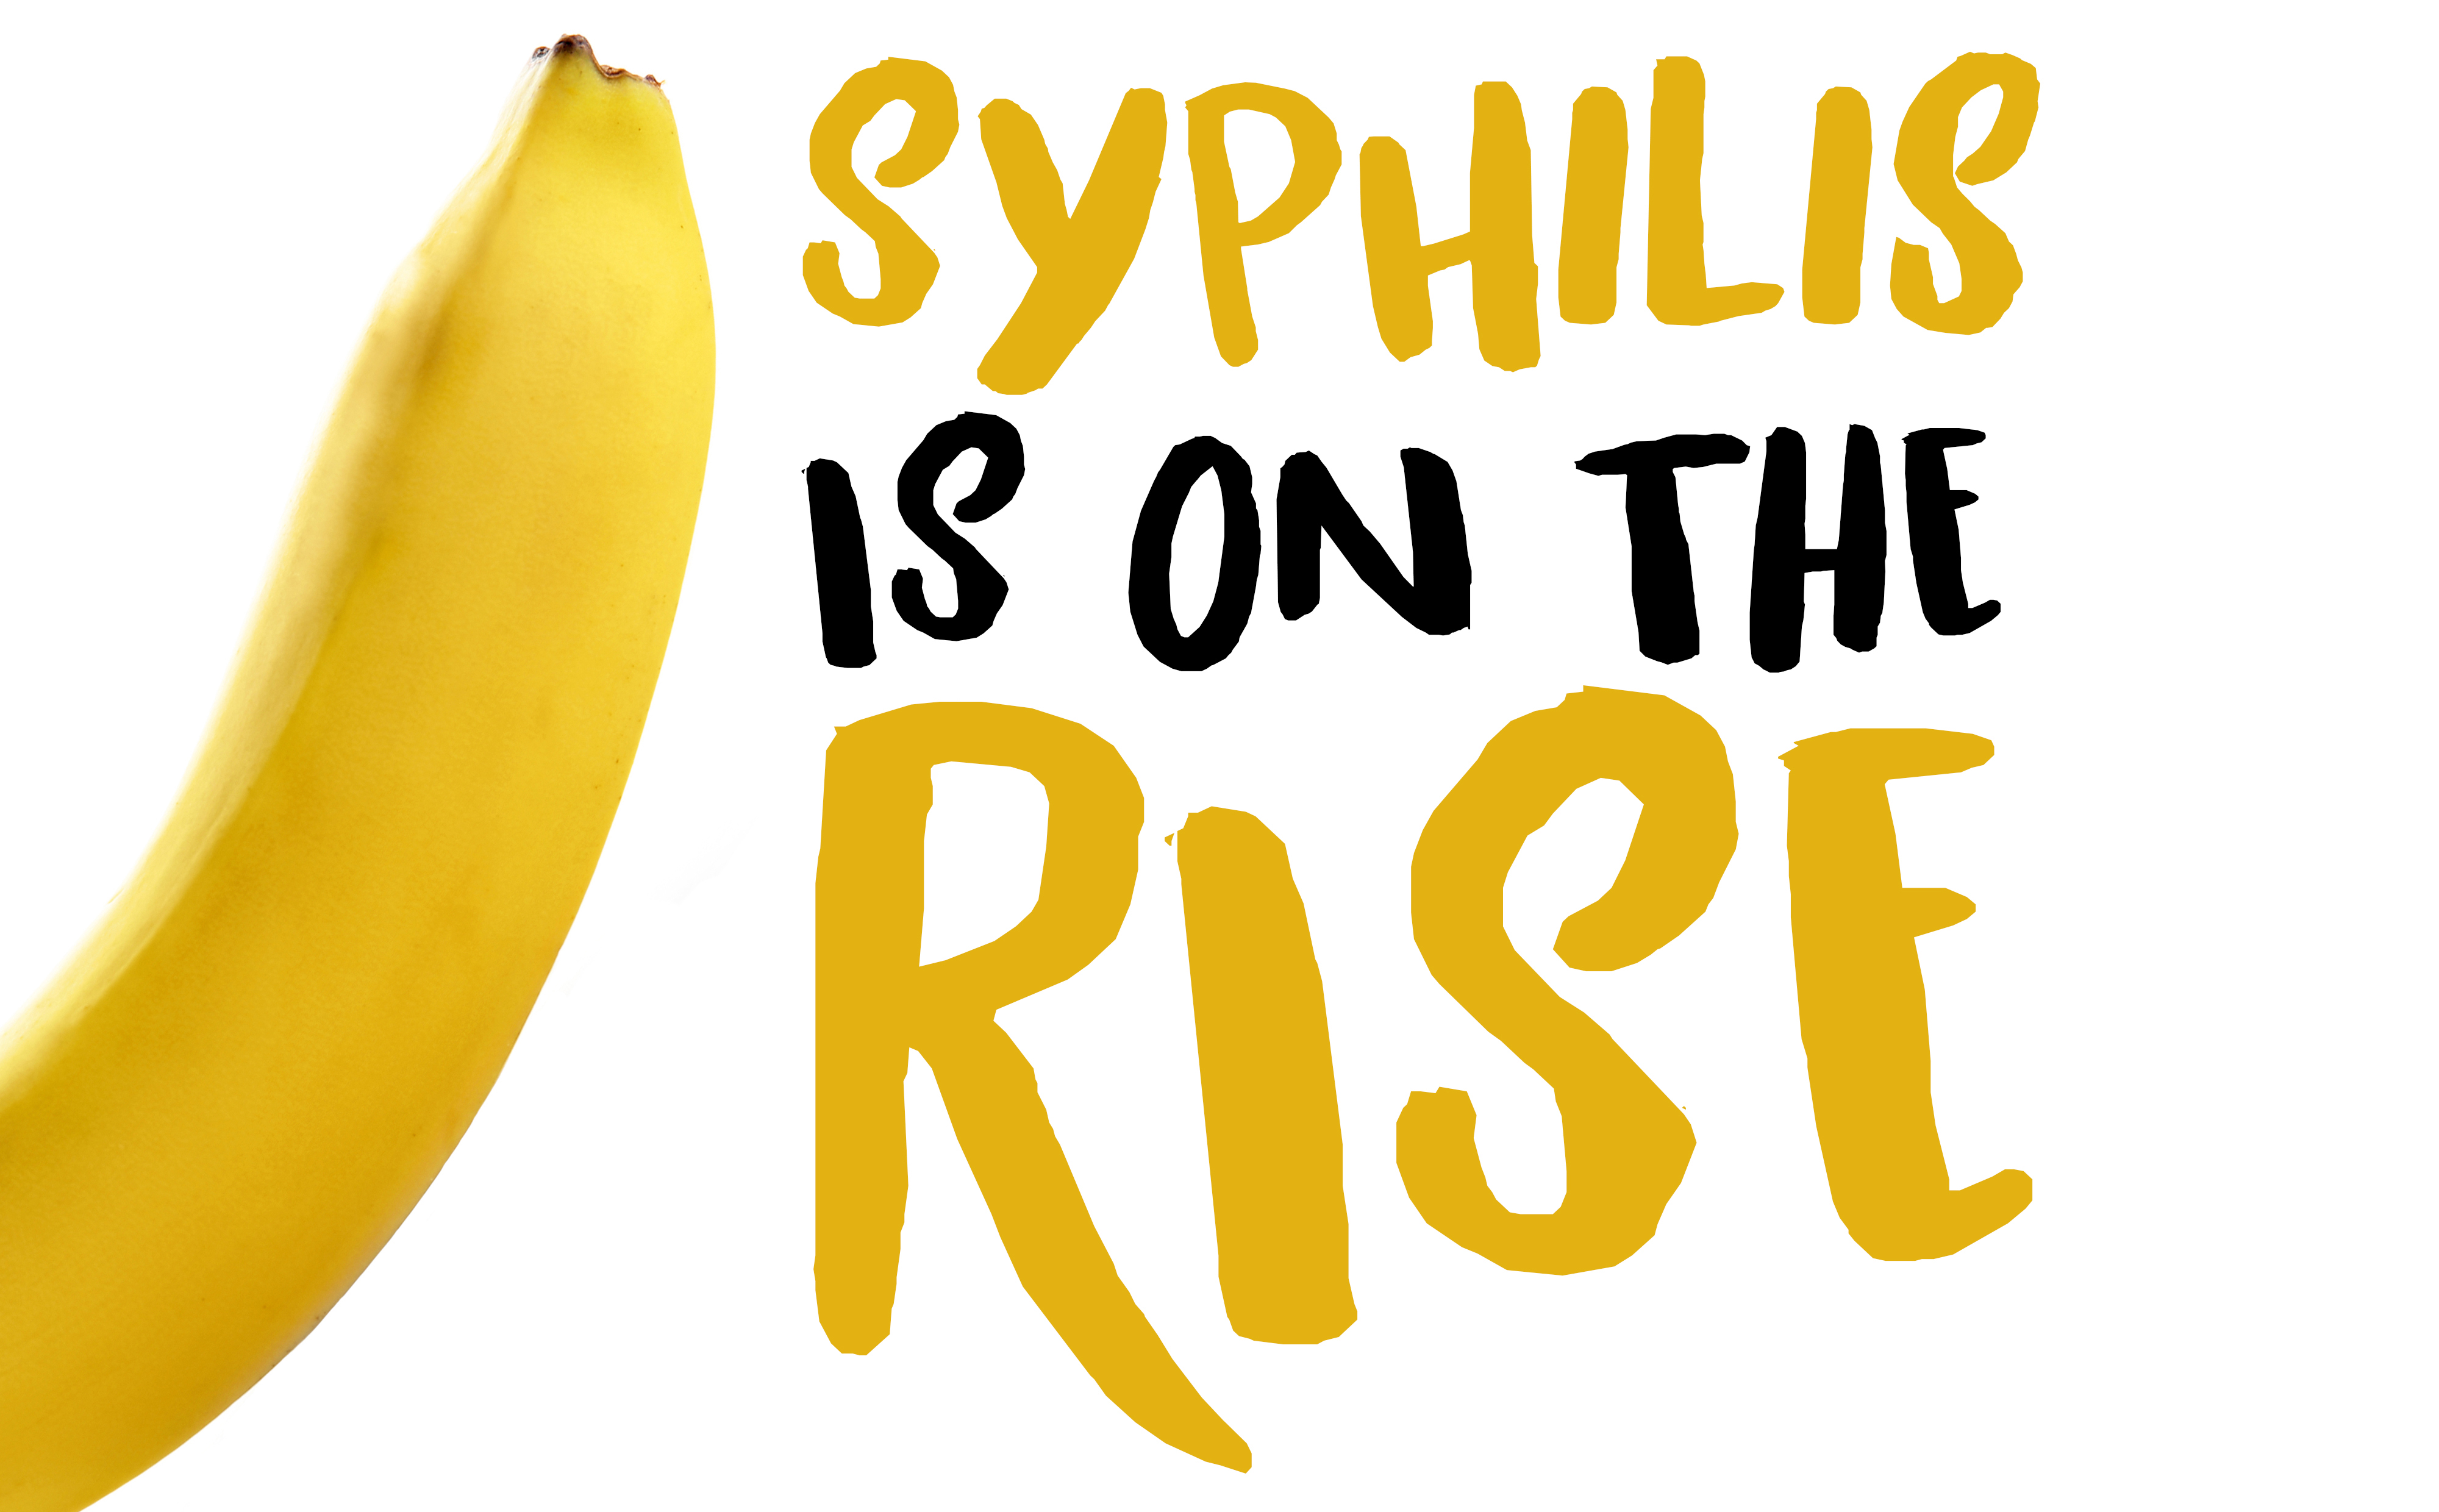 Syphilis is on the rise - banana logo